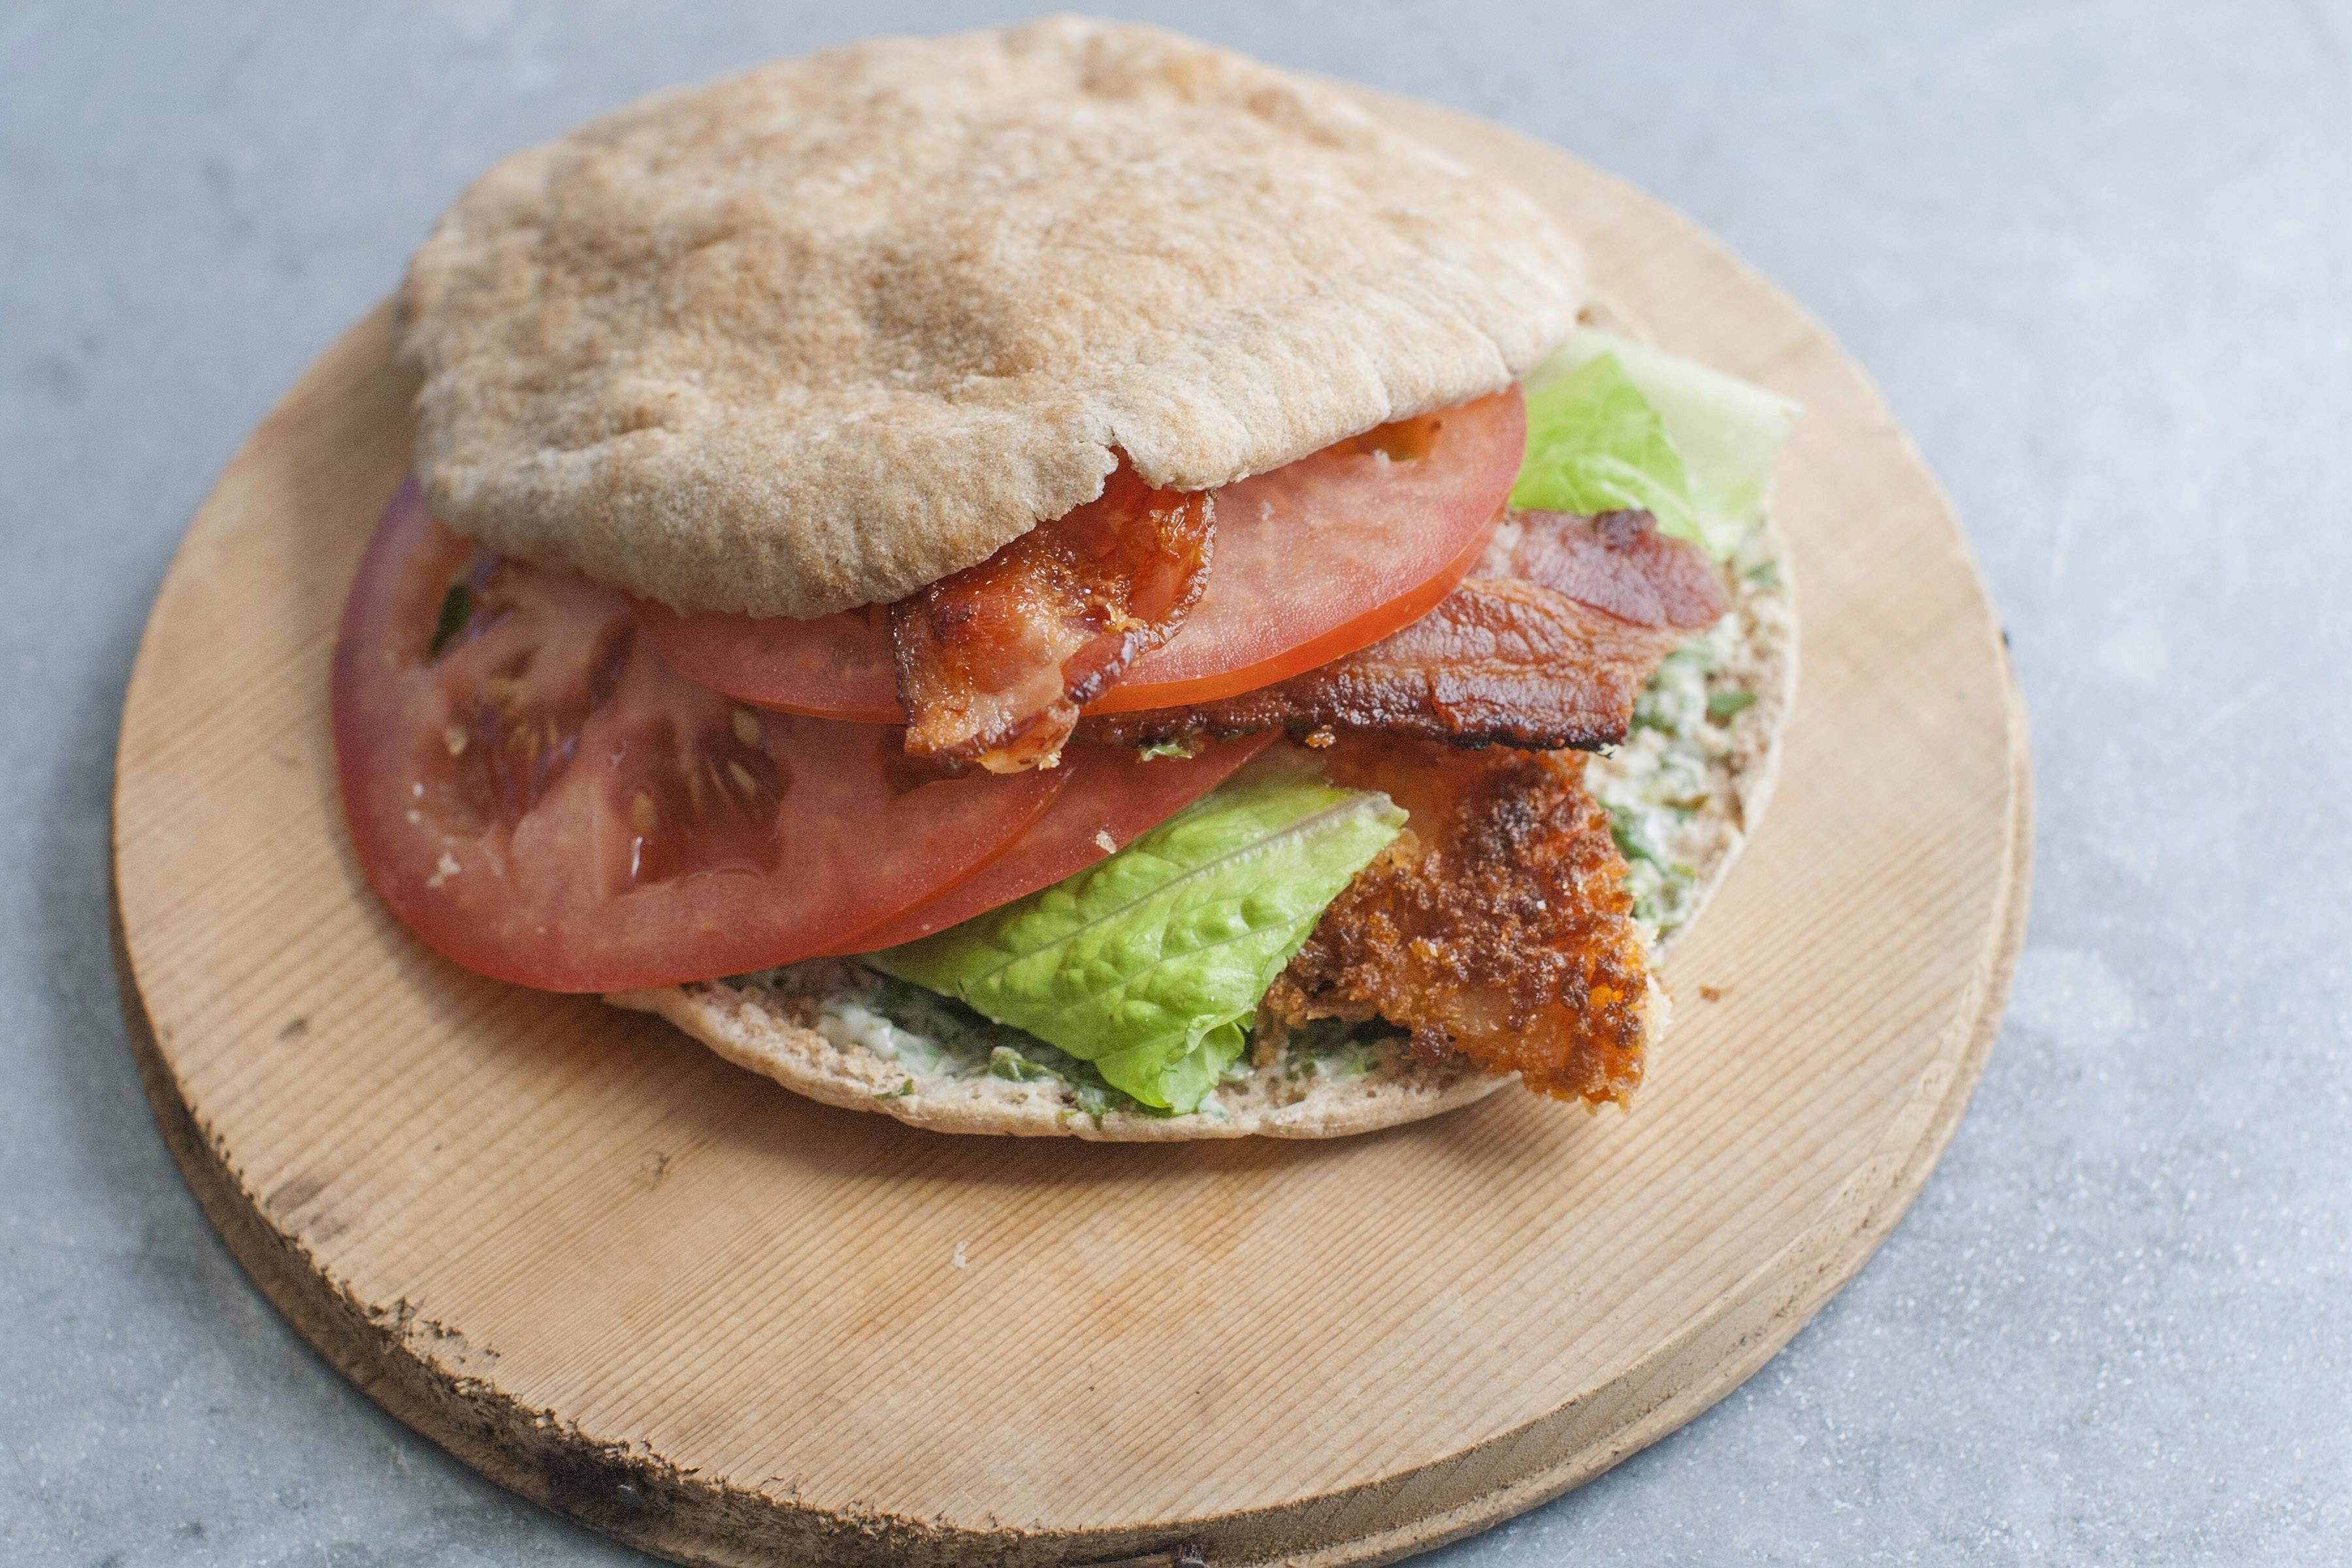 Bulking up the classic BLT without adding fat